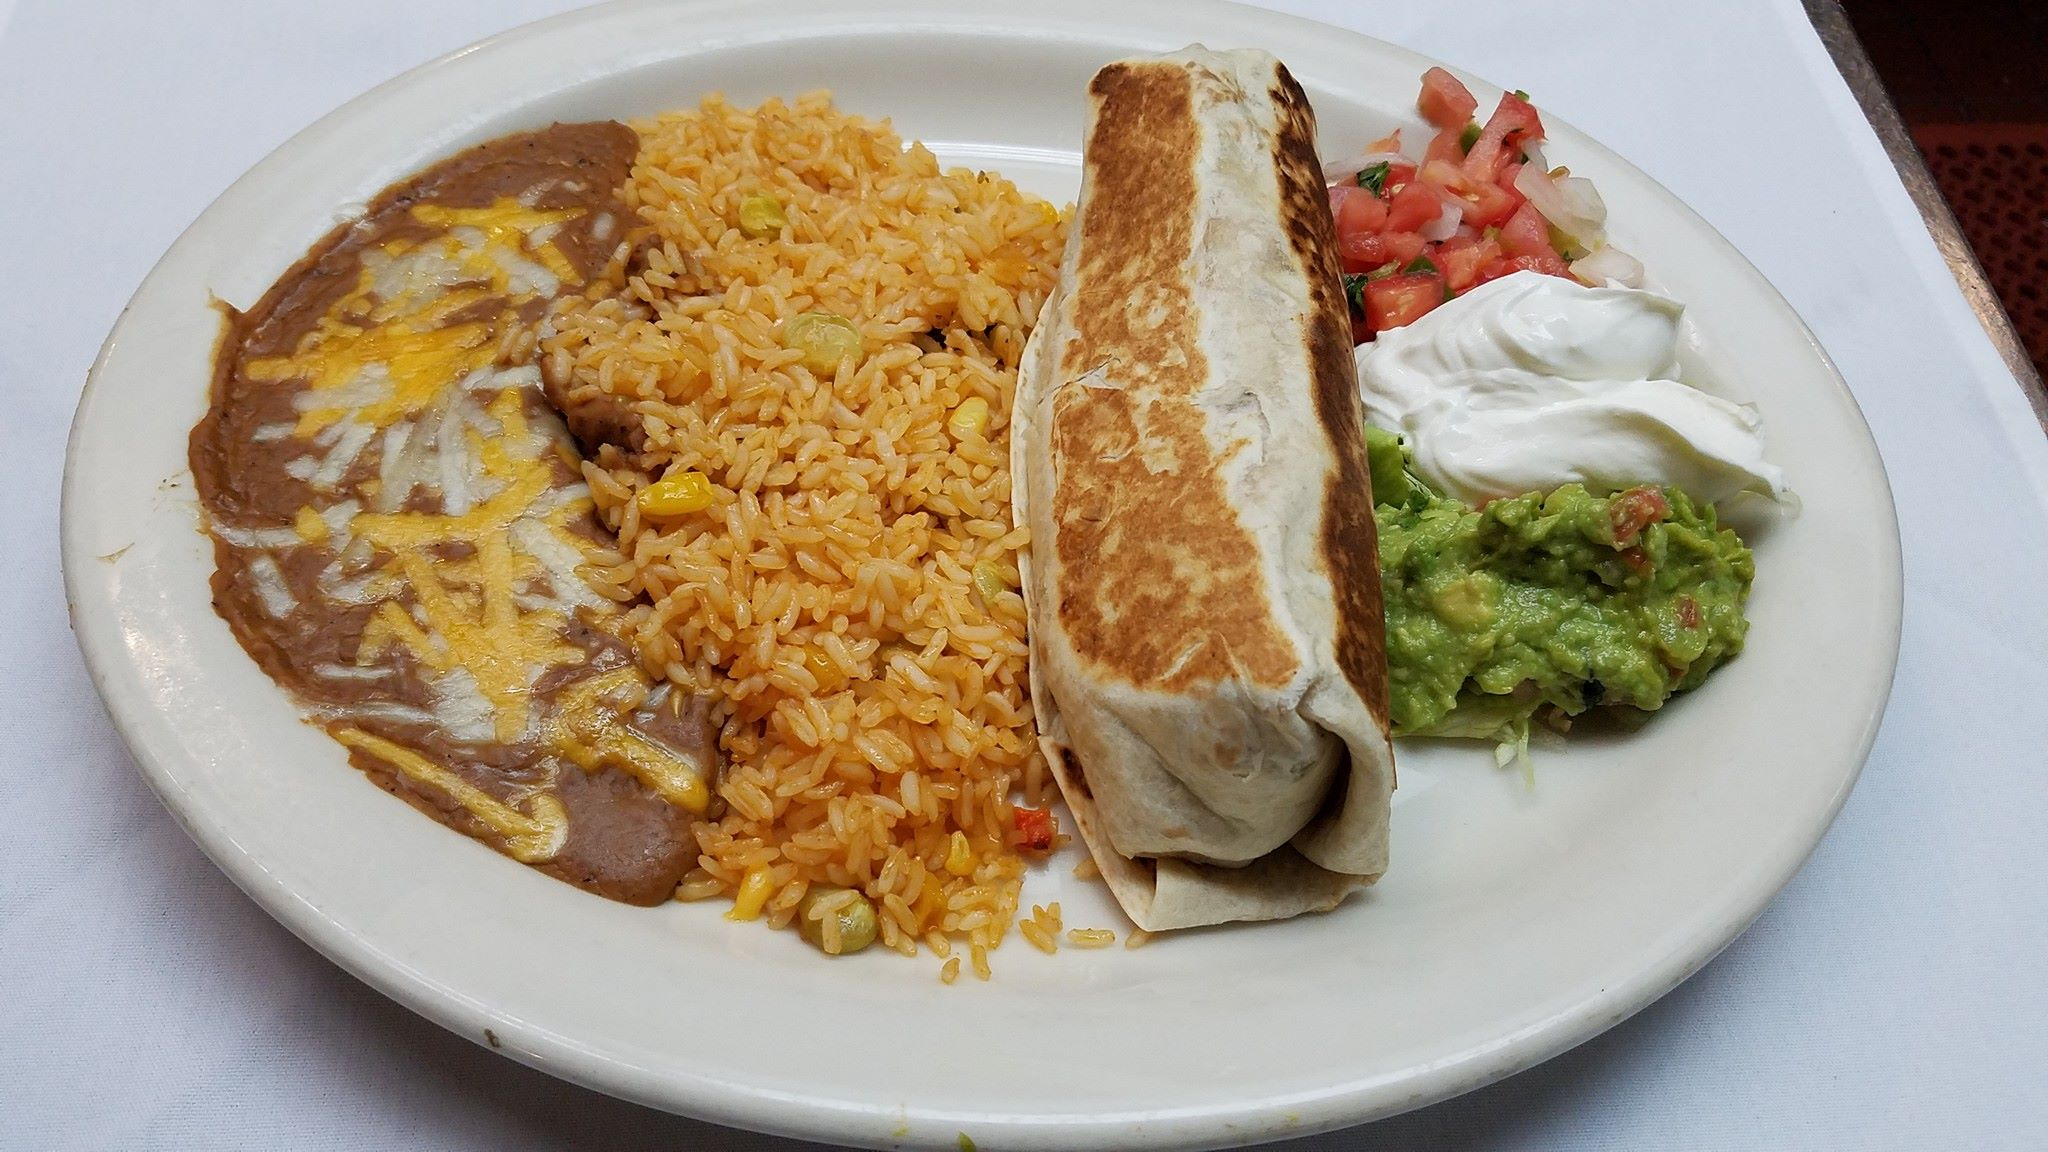 A flour filled tortilla served with yellow Mexican rice, refried pinto beans, lettuce, pico de gallo, guacamole, and sour cream